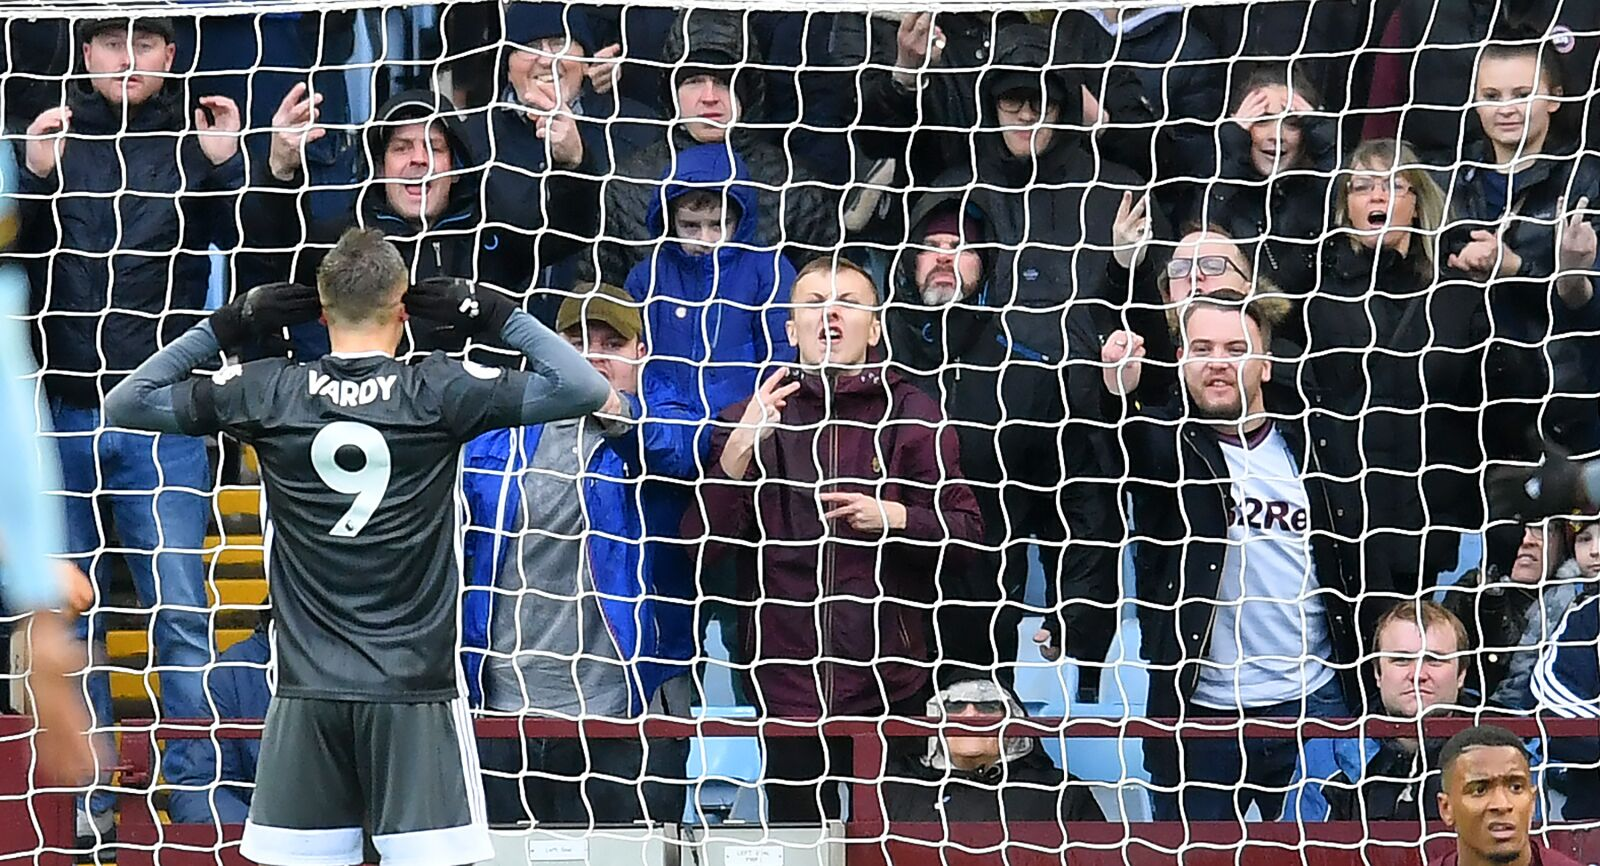 Opposition fans' comeuppance from taunted Jamie Vardy: Leicester